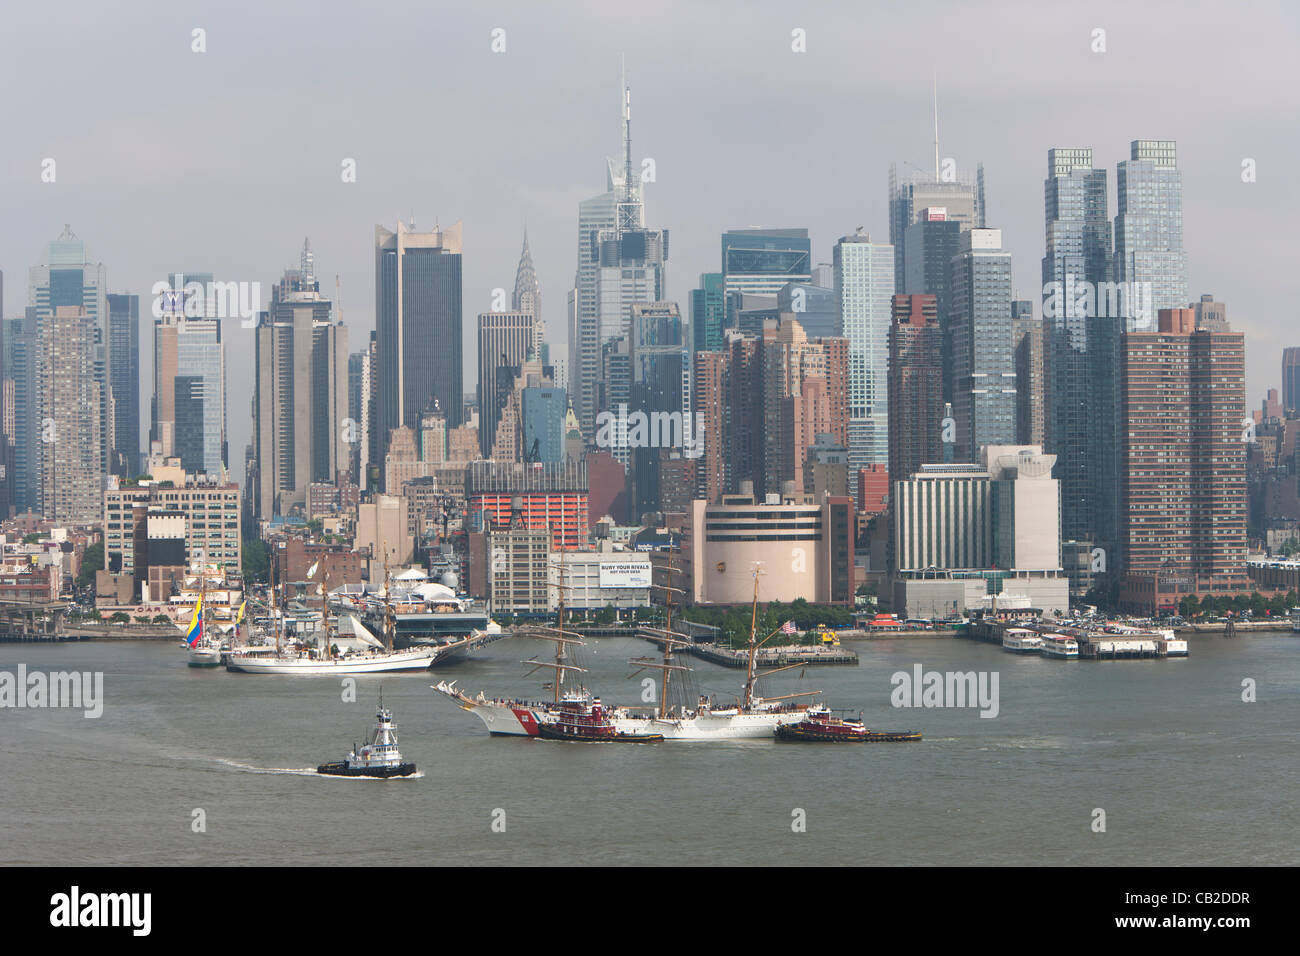 US Coast Guard Barque Eagle participates in the Parade of Sail on the Hudson River with other Tall Ships near the - Stock Image